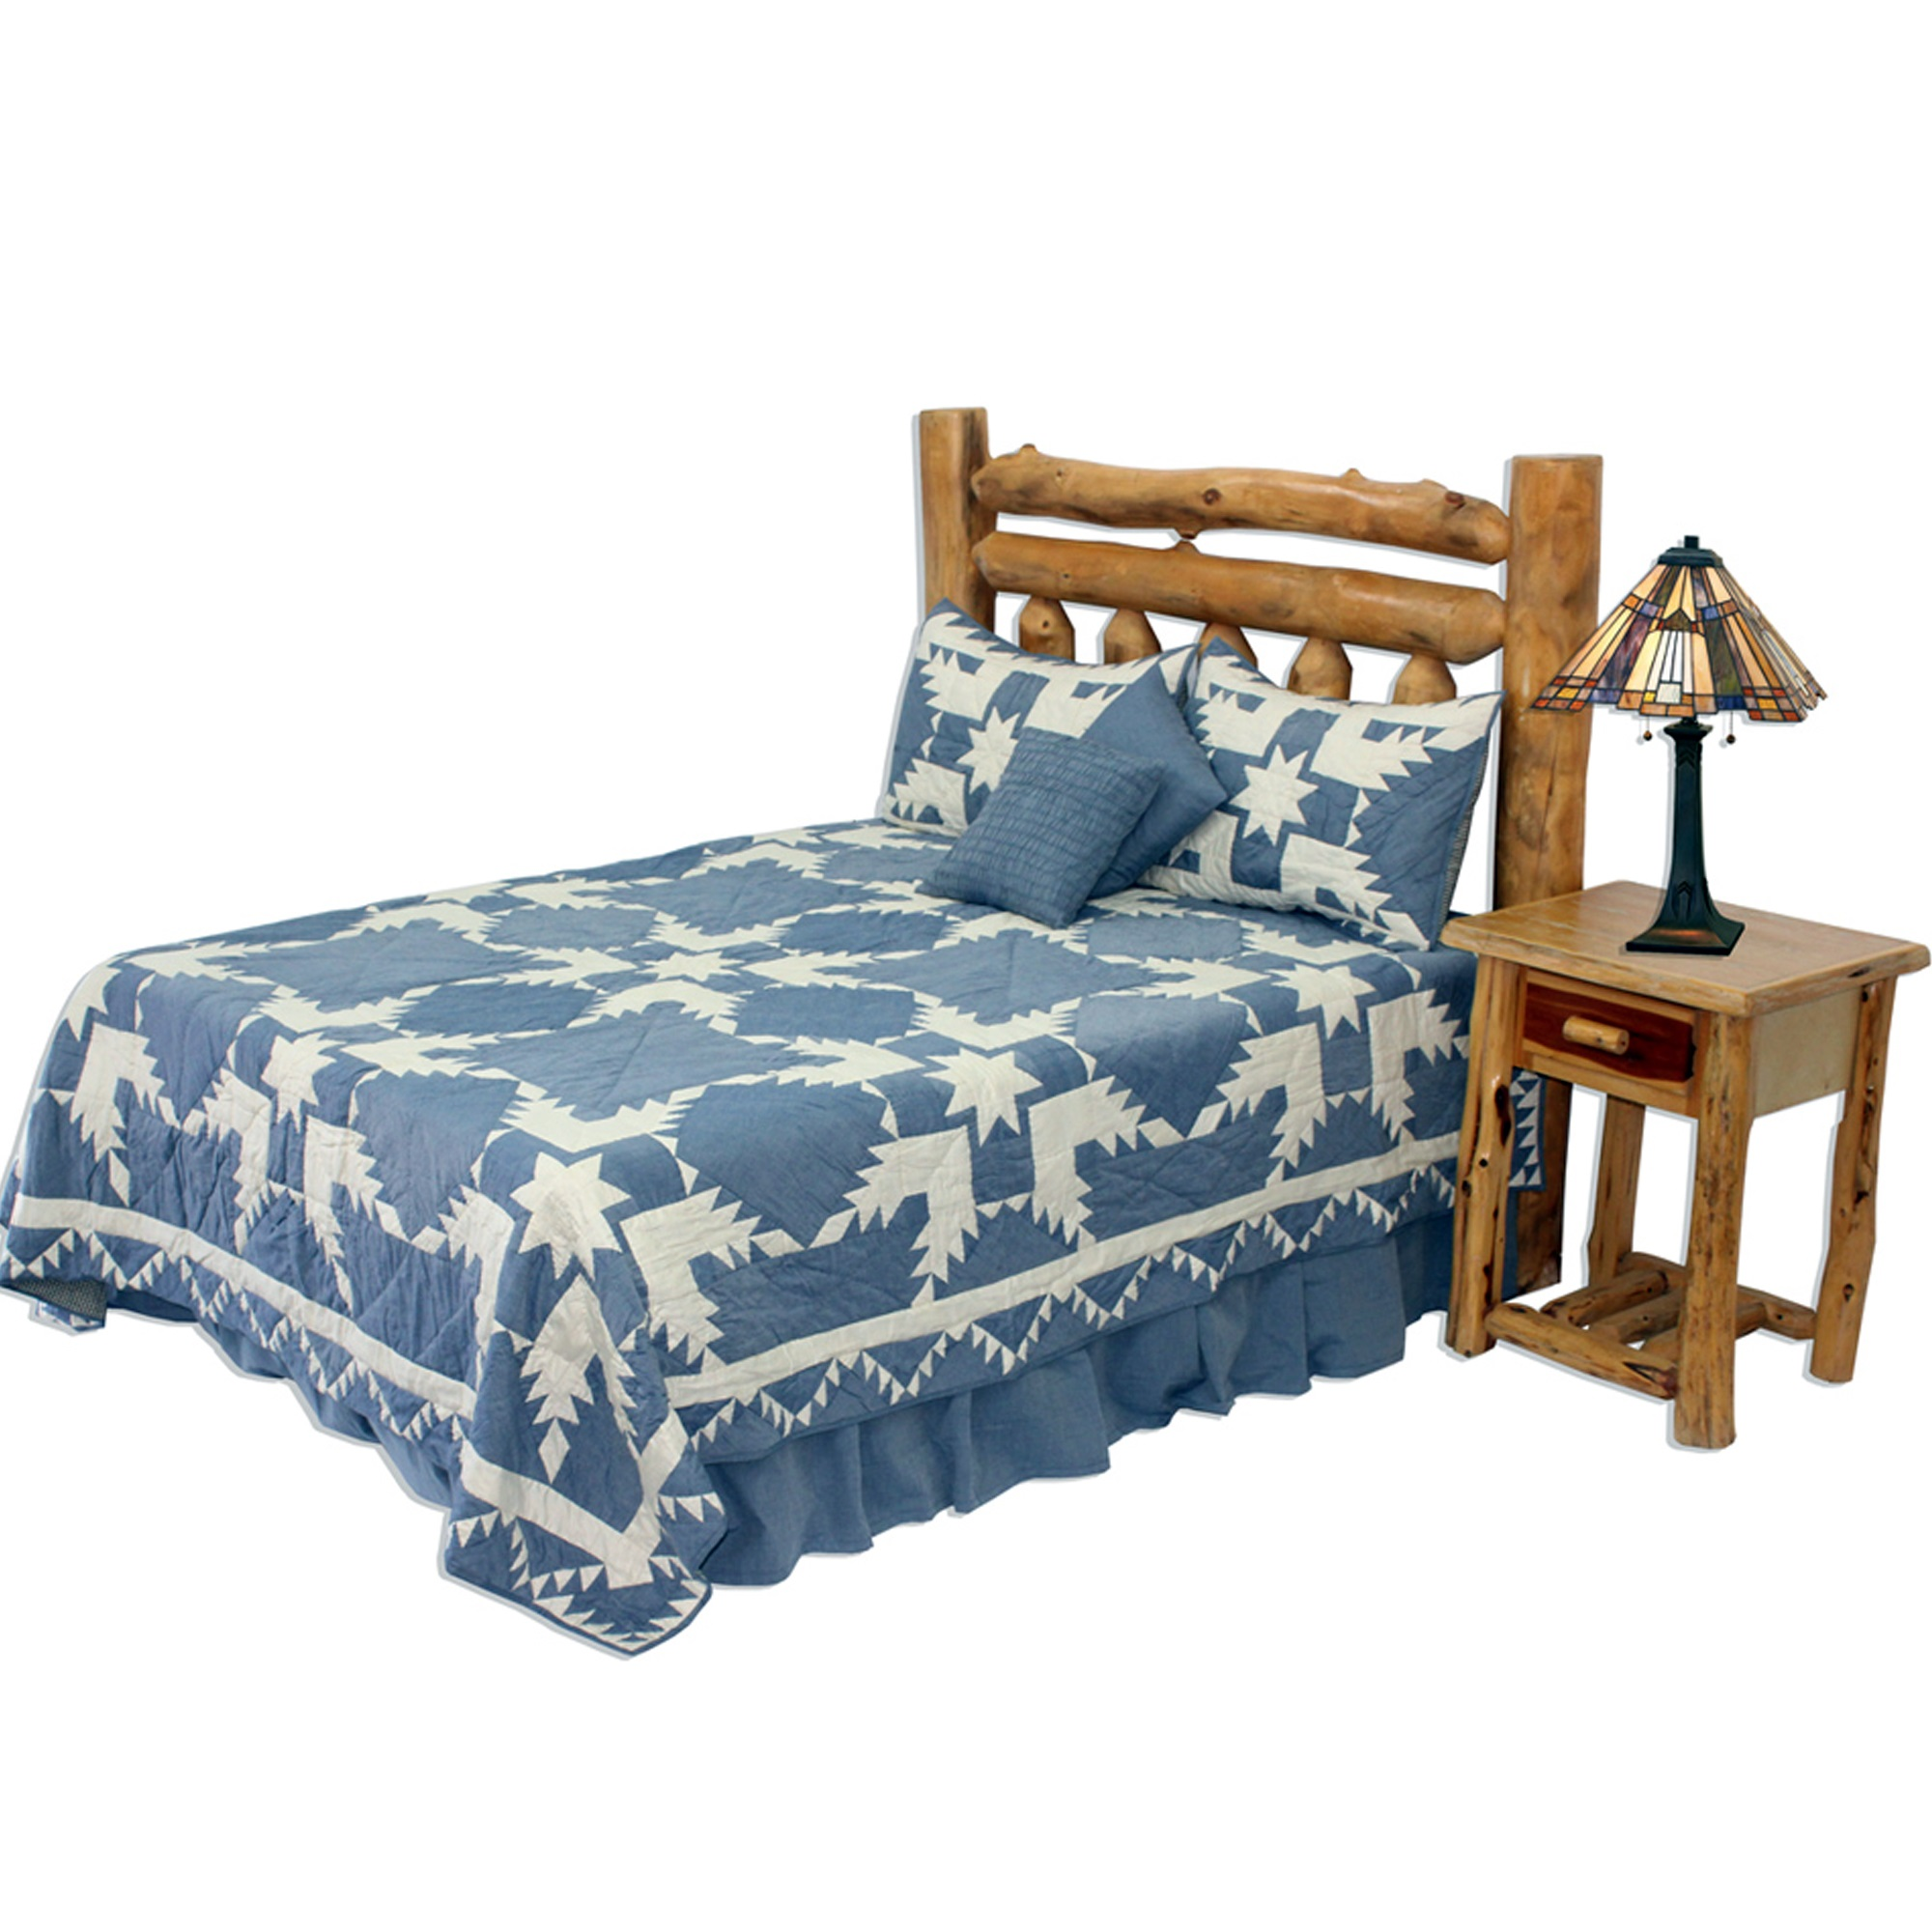 "Denim Feathered Star Super Queen Quilt 92""W x 96""L"